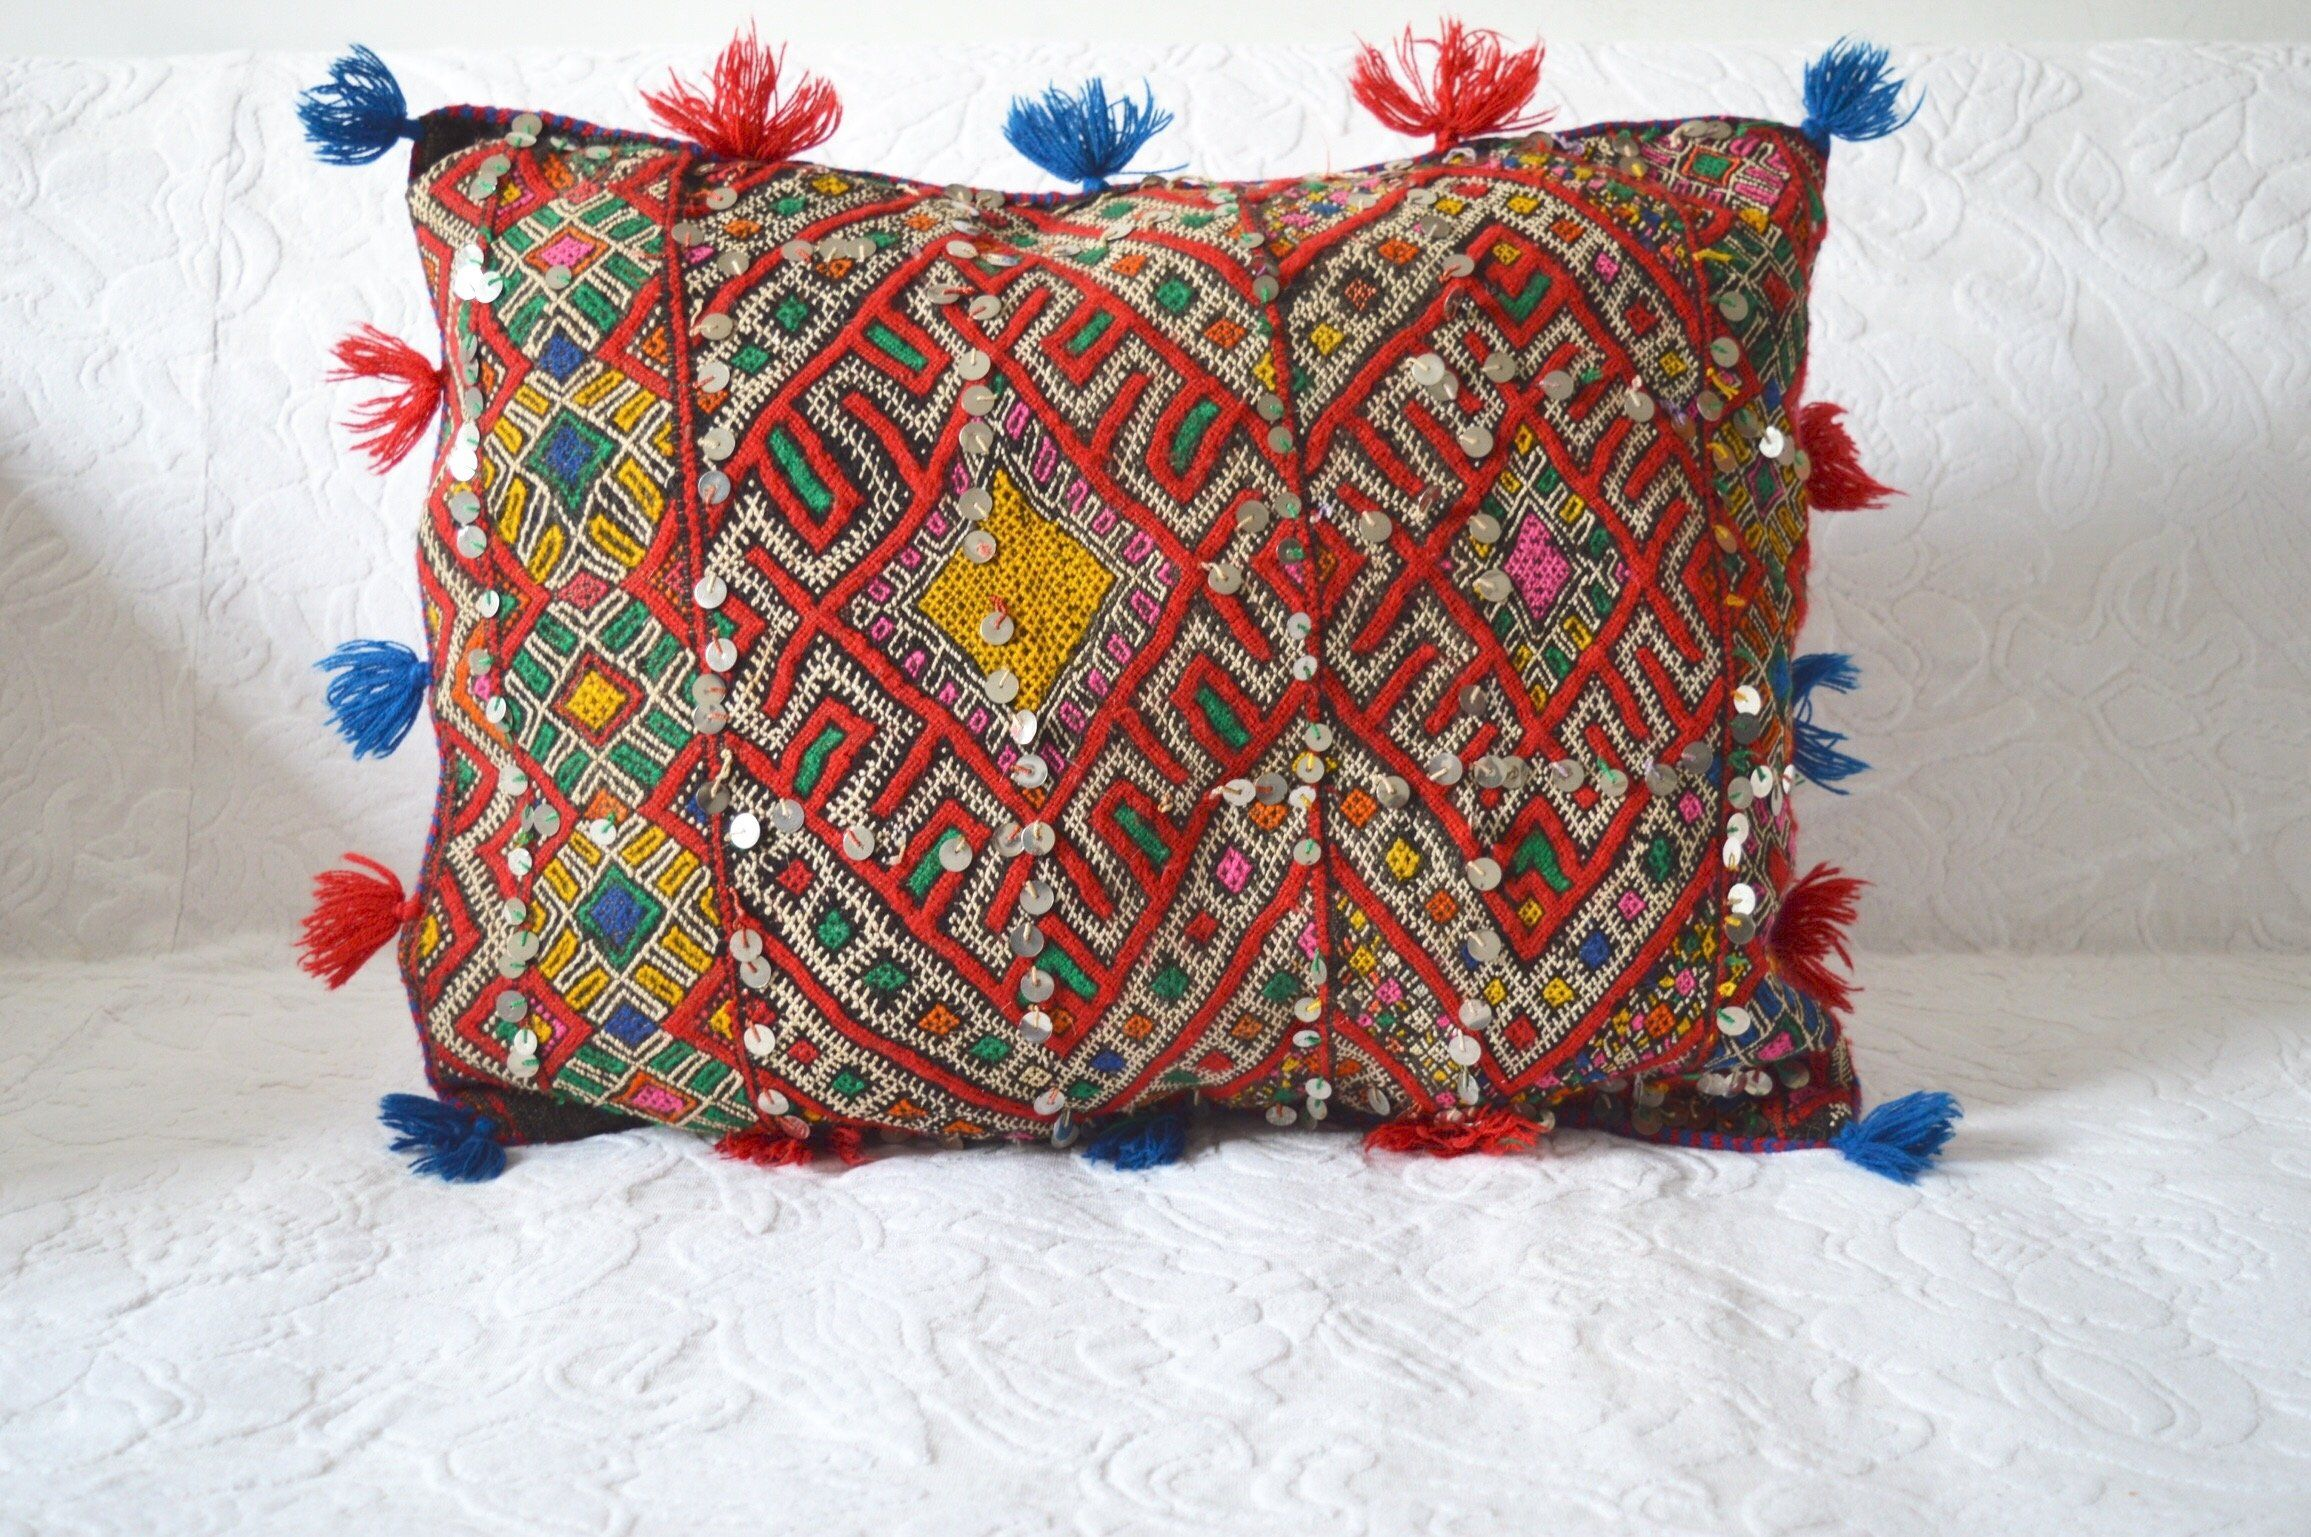 Beautiful Vintage Berber Kilim Pillow from Morocco